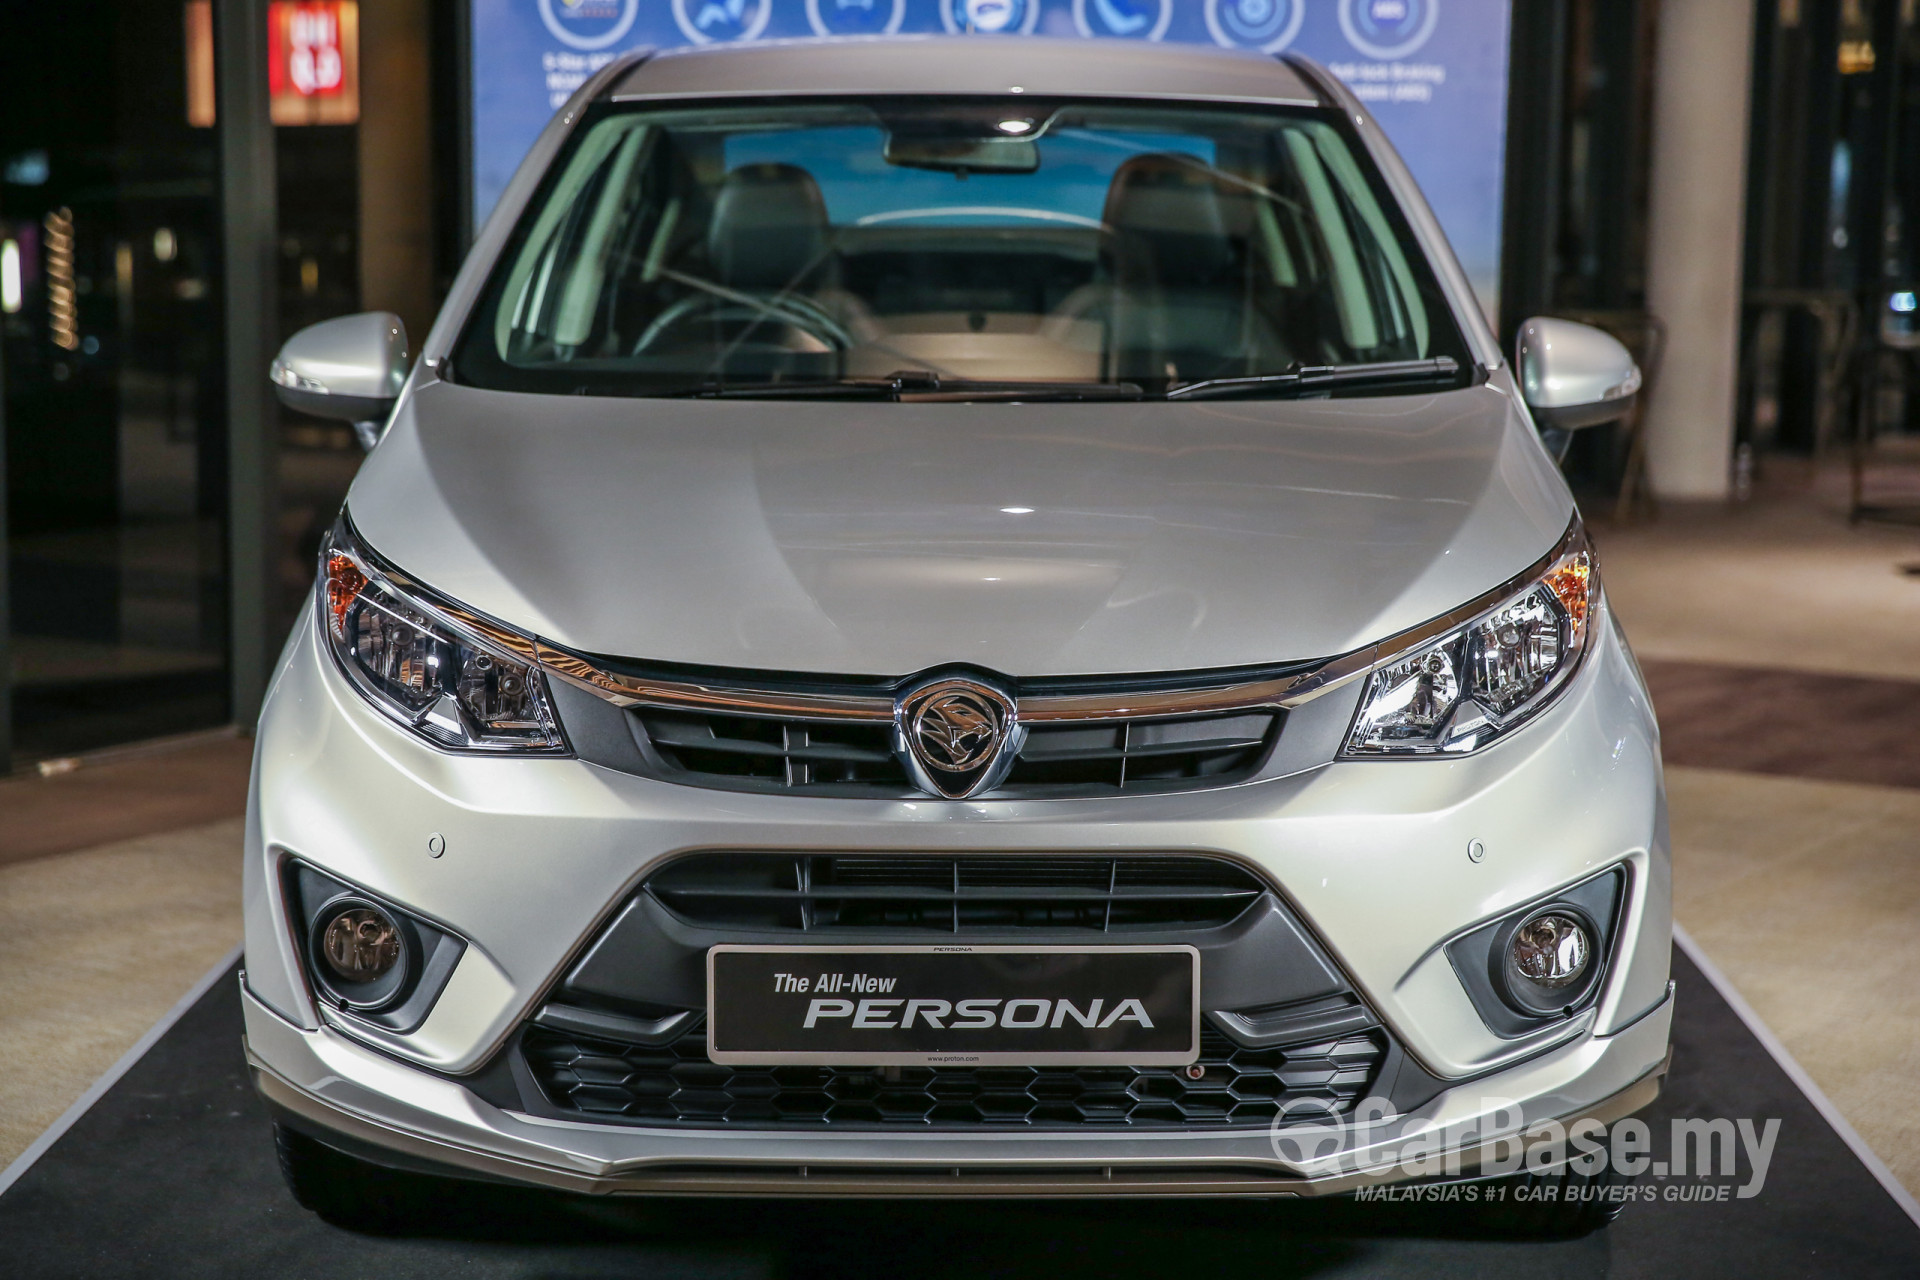 Proton Persona Exterior Image In Malaysia Reviews